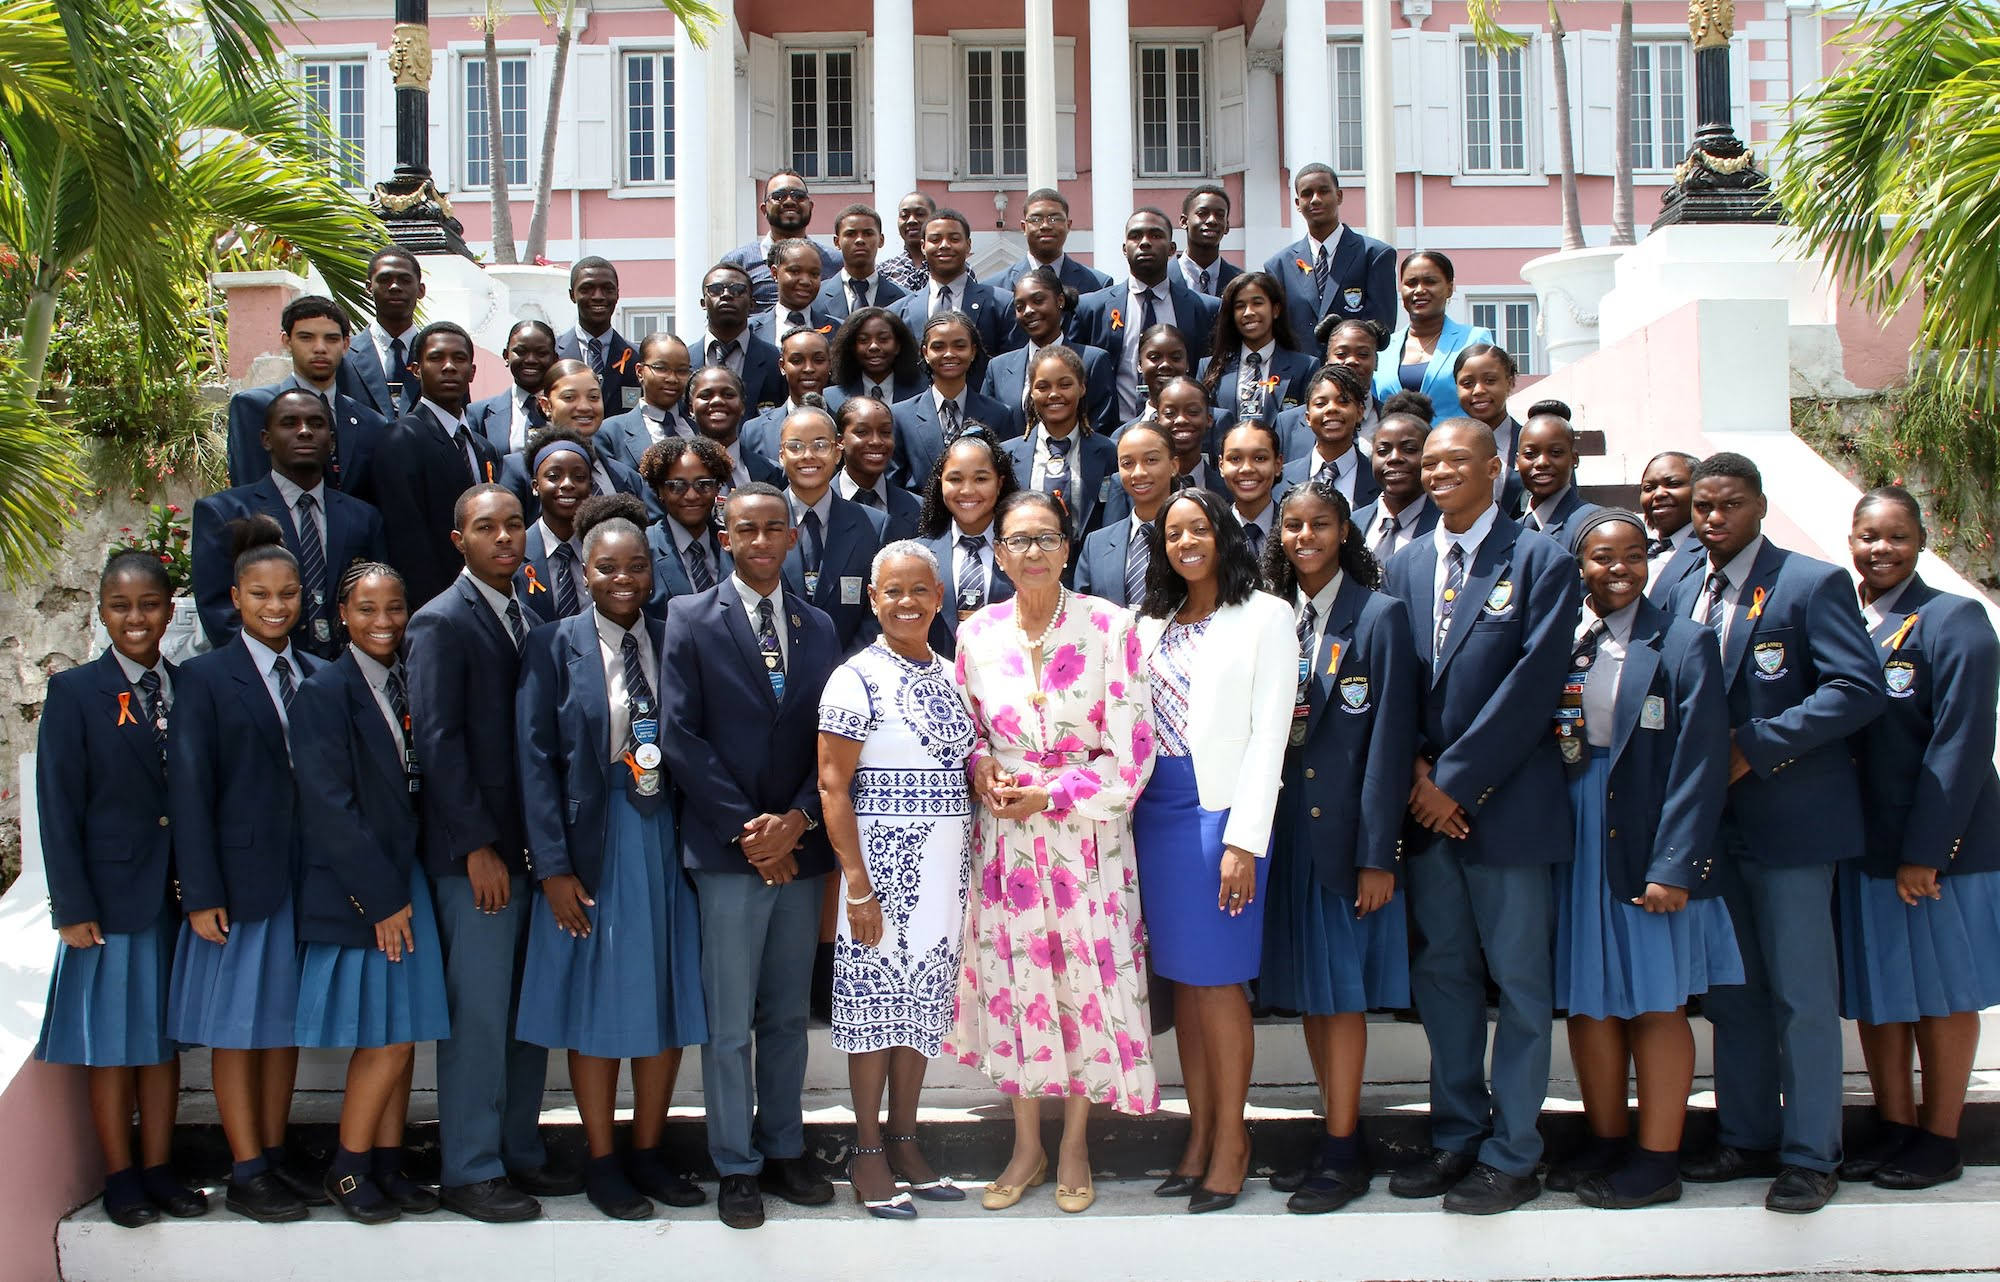 GG welcomes St. Anne's School 2019 graduating class